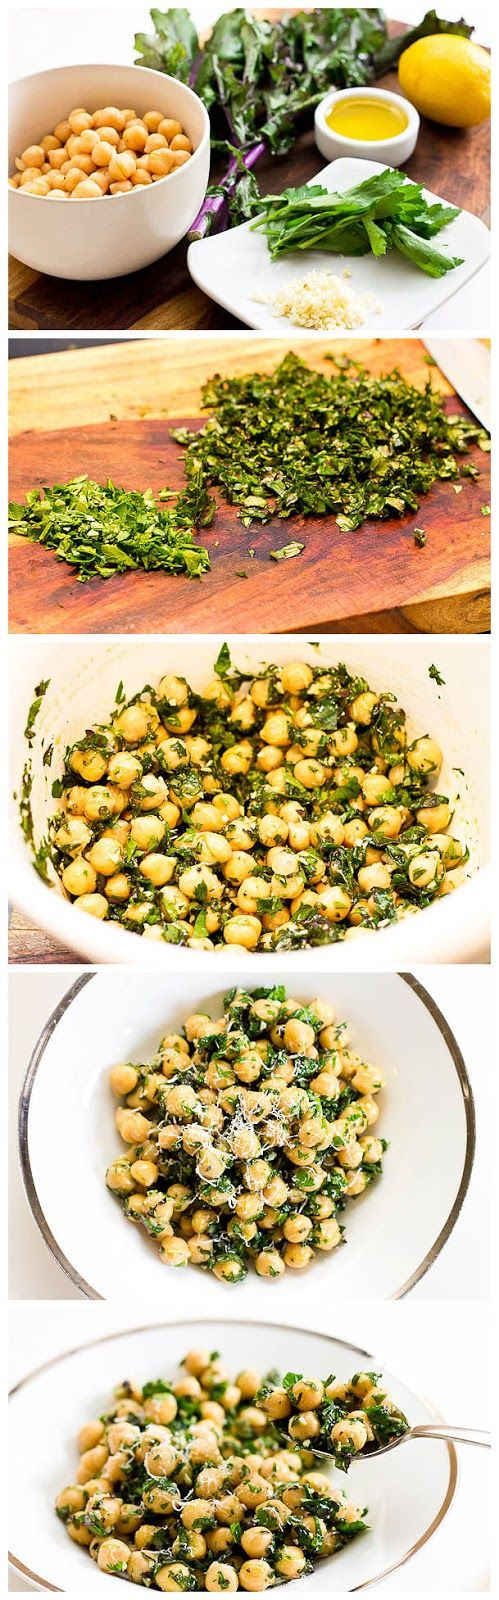 Ingredients: 1 can chickpeas, rinsed and drained 3-4 leaves kale, chopped 2 tablespoons fresh parsley, chopped 2 tablespoons olive oil 1 clove garlic, chopped 1 lemon, juiced salt and pepper, to taste pecorino romano or parmesan cheese, grated to taste. My dinner tonight!